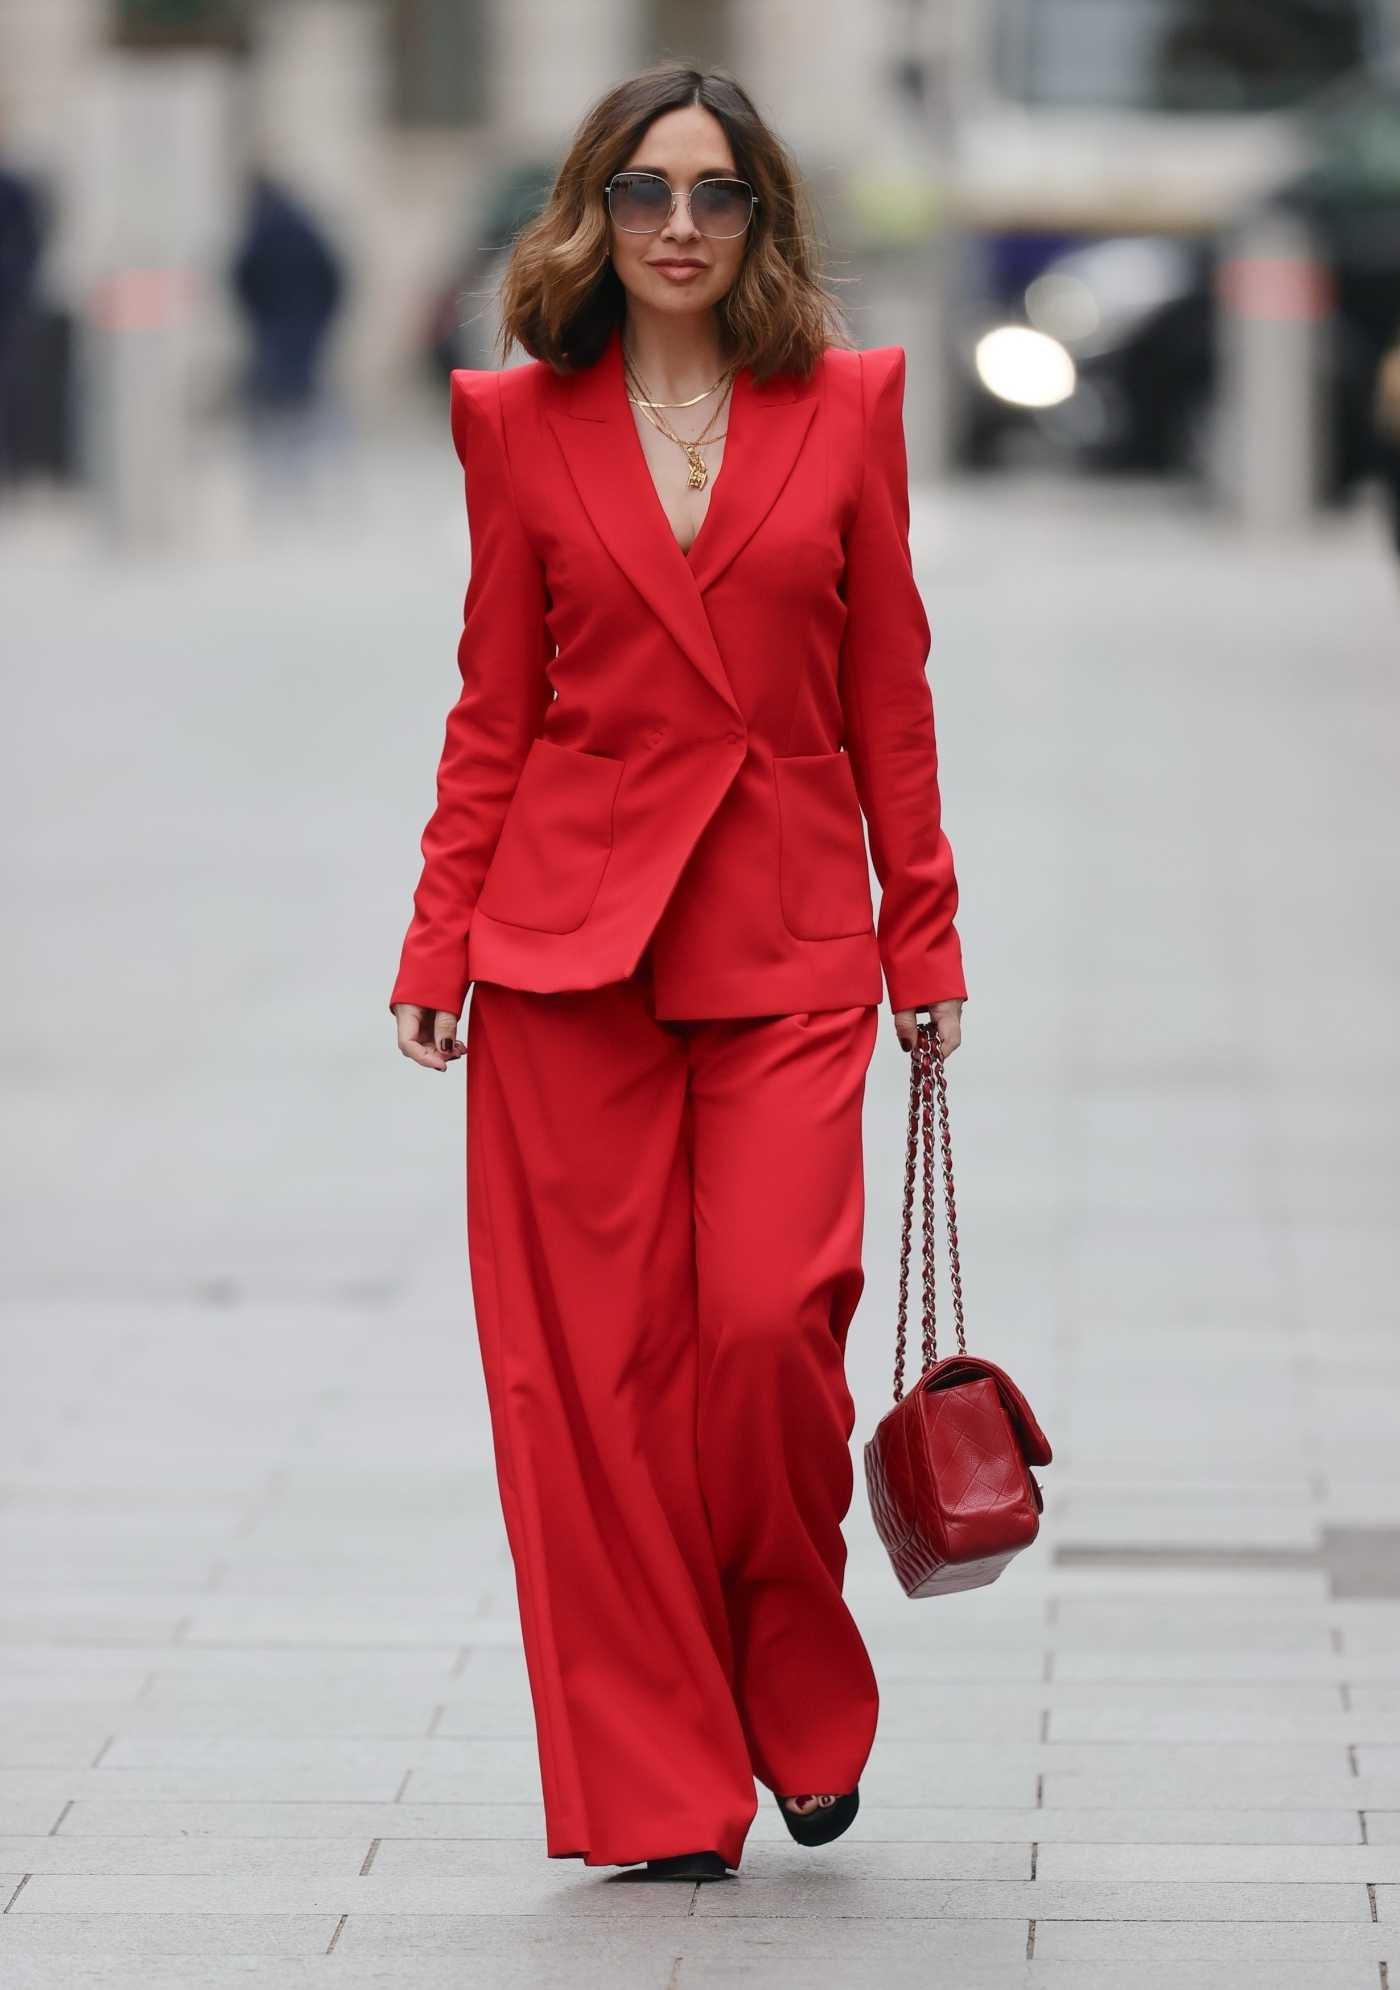 Myleene Klass in a Red Pantsuit Arrives  at the Smooth Radio in London 03/20/2021